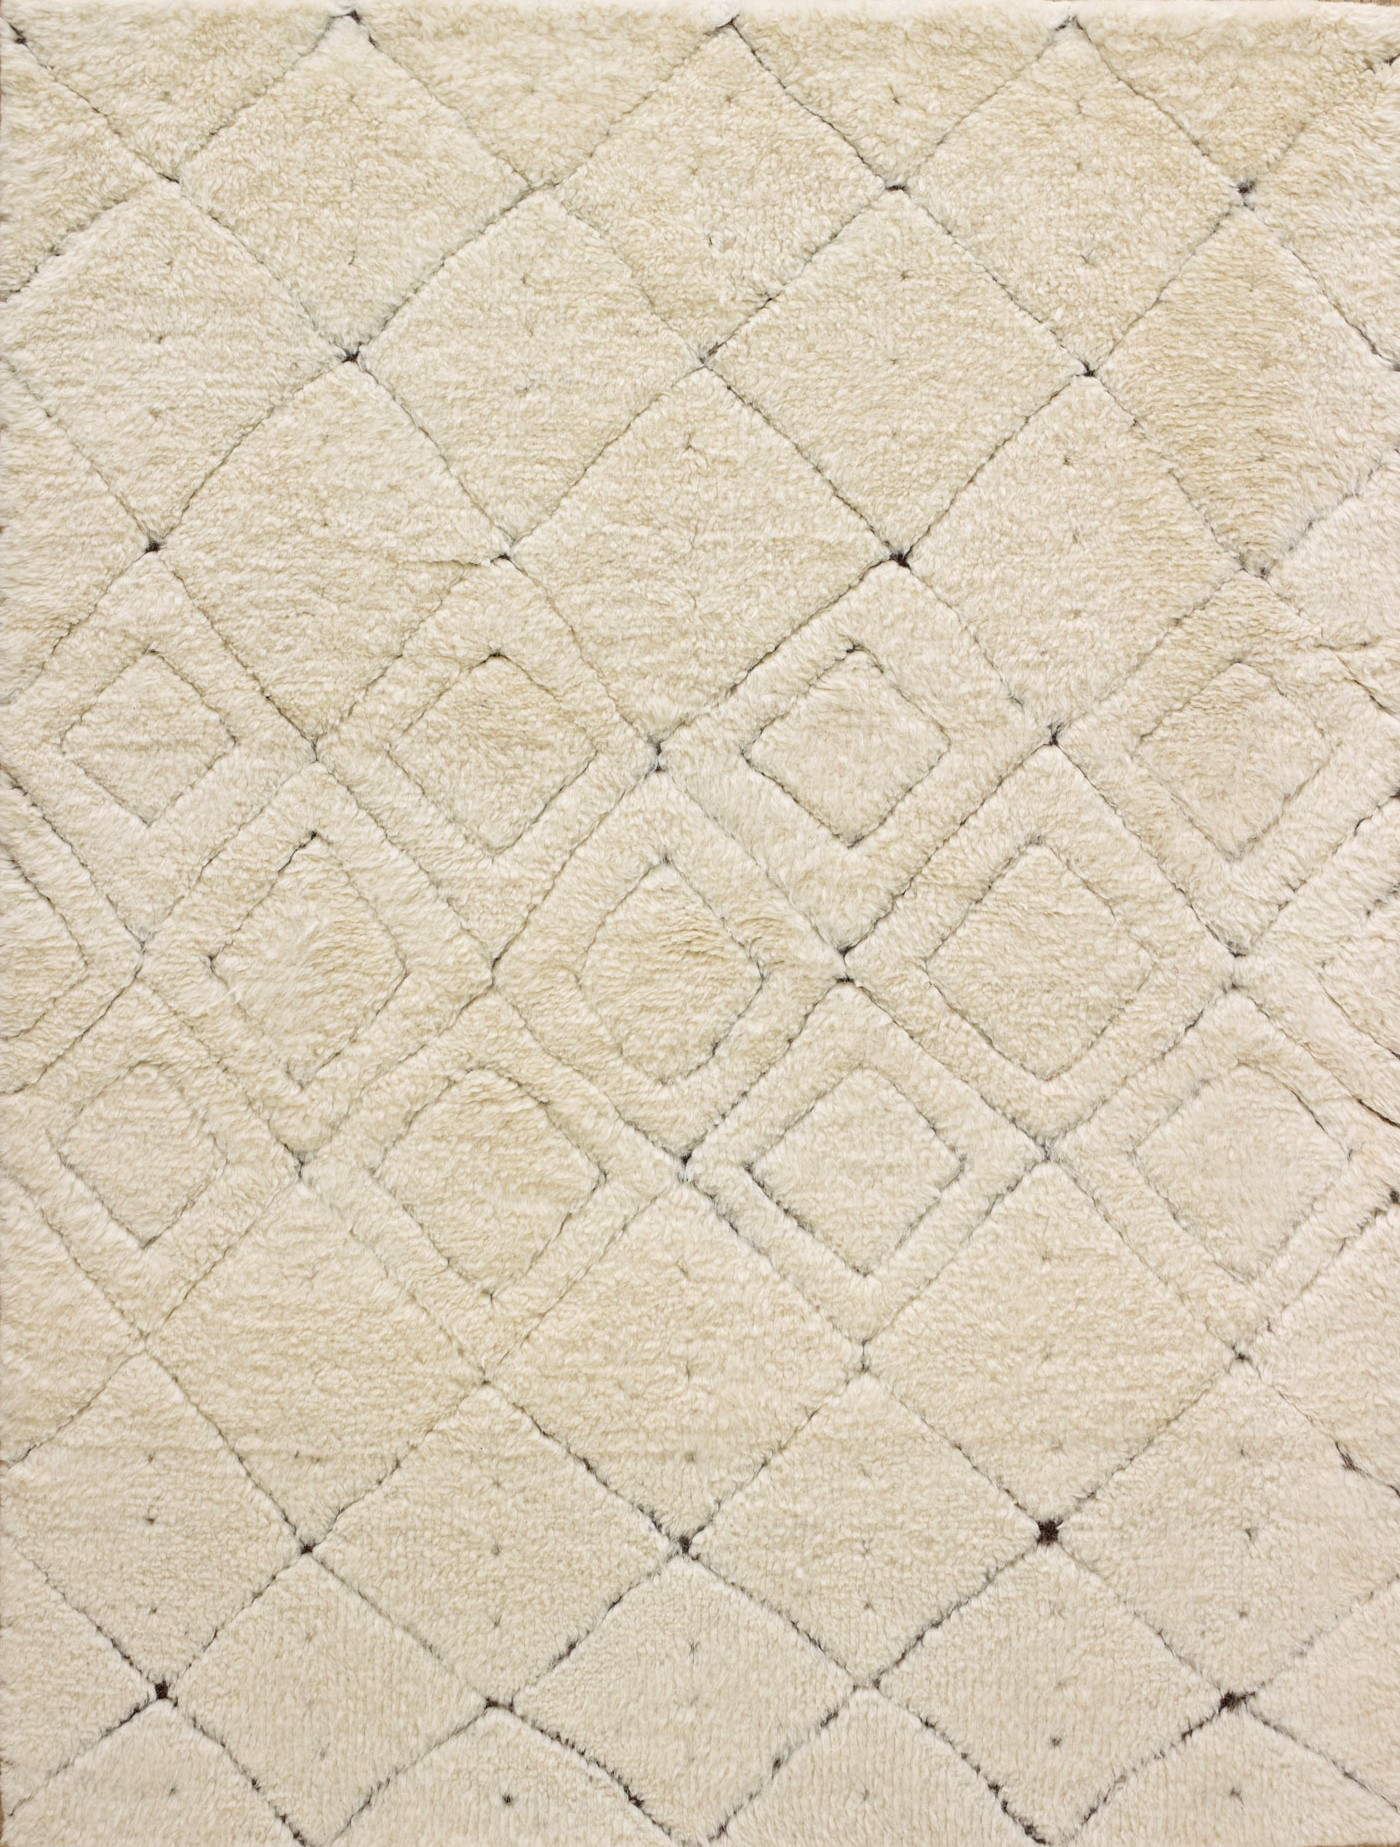 Moroccan Hand-Knotted Wool Rug (Colour: Cream, Rug Size: 160 x 230)